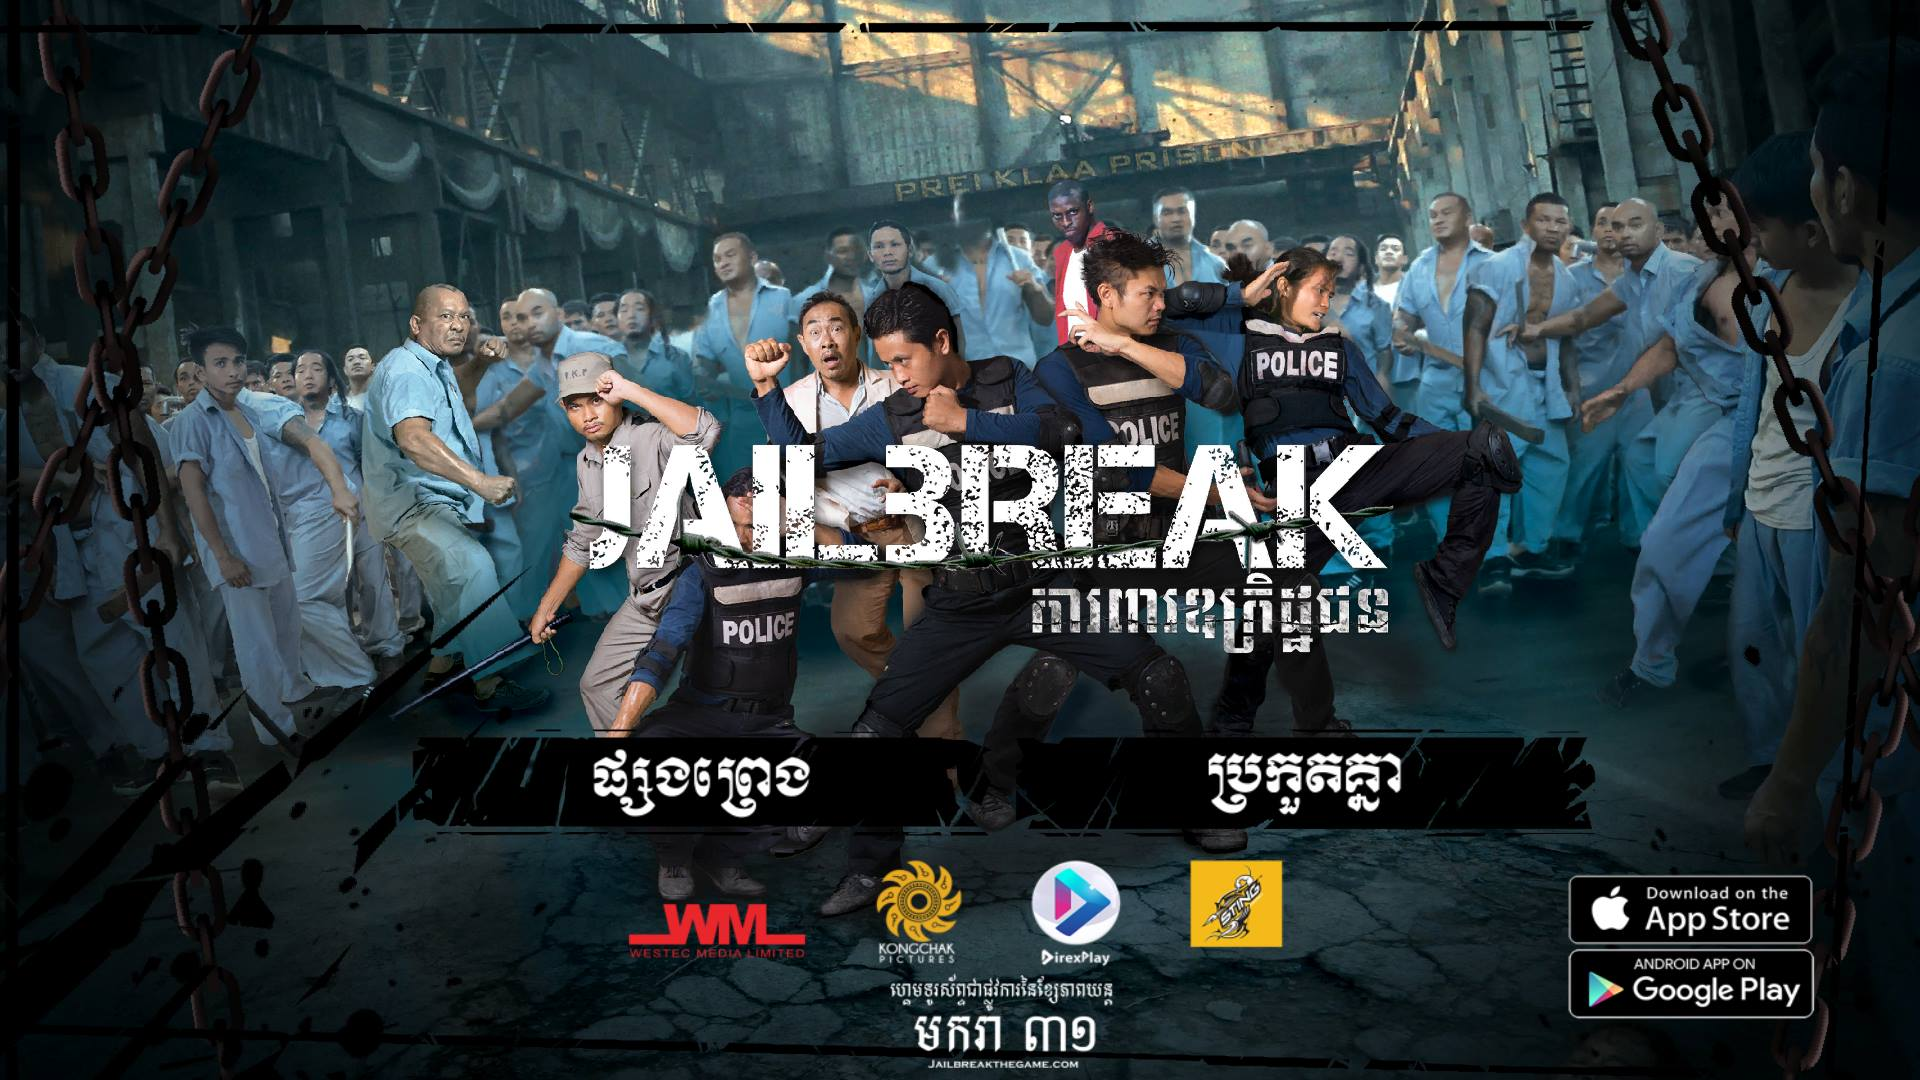 Direxplay is releasing the first official game for Cambodian movie Jailbreak